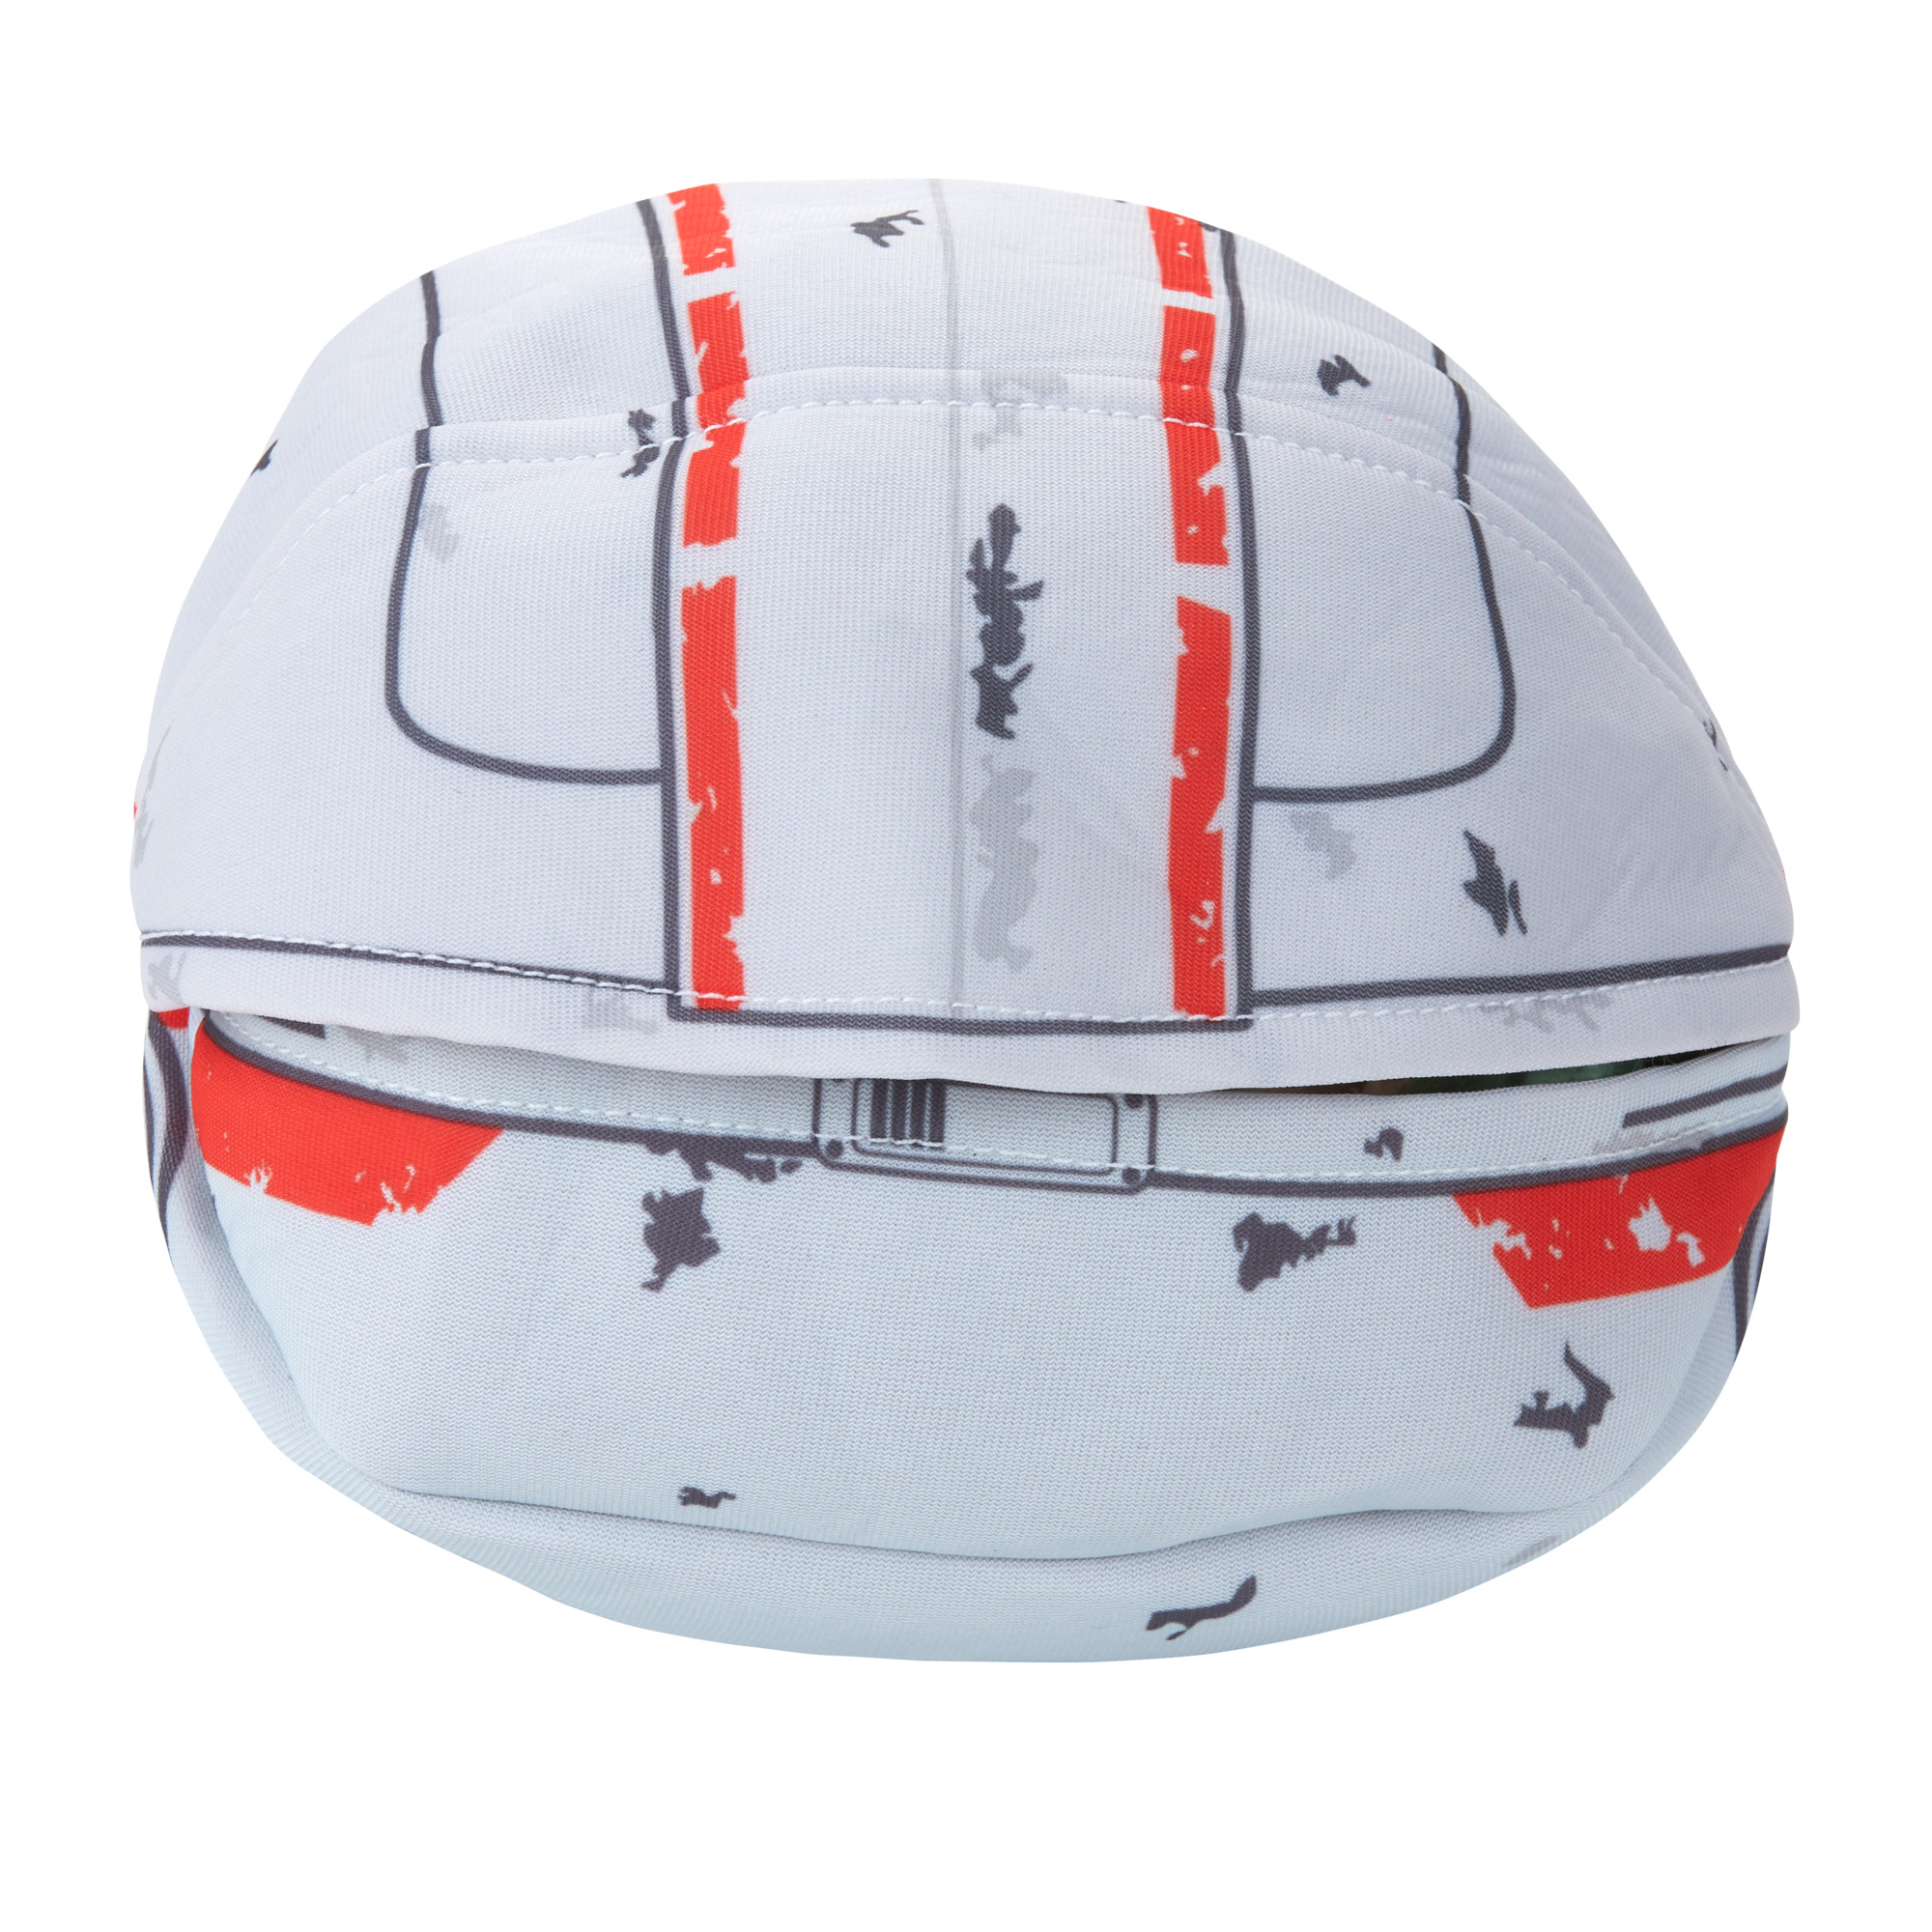 STAR WARS THE BOUNTY COLLECTION THE CHILD HIDEAWAY HOVER-PRAM PLUSH – oop(12)